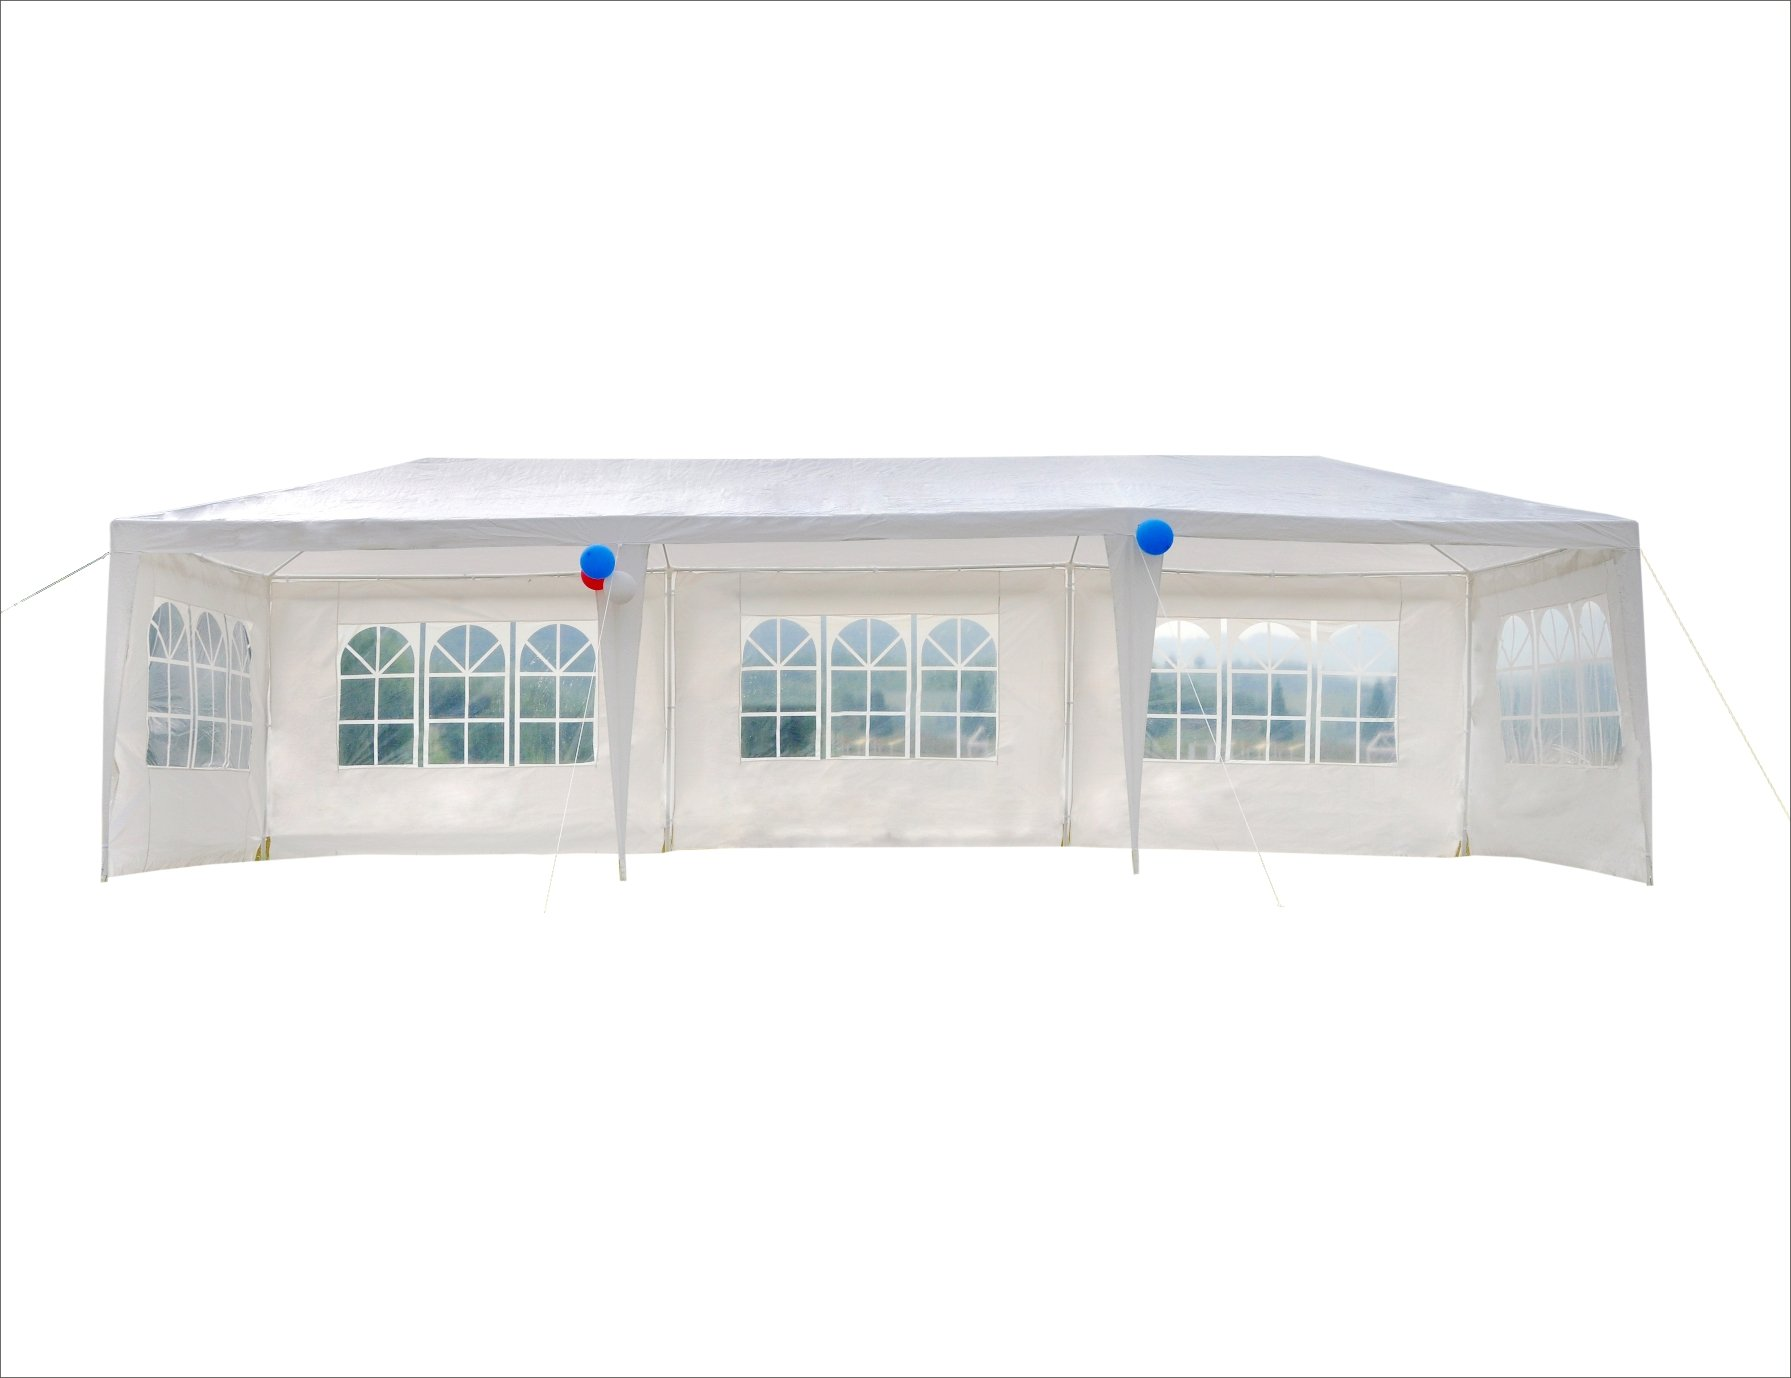 GOJOOASIS Wedding Party Tent 10x30 White Outdoor Canopy Tent Outdoor Gazebo (10' x 30' with 5 Walls) by GOJOOASIS